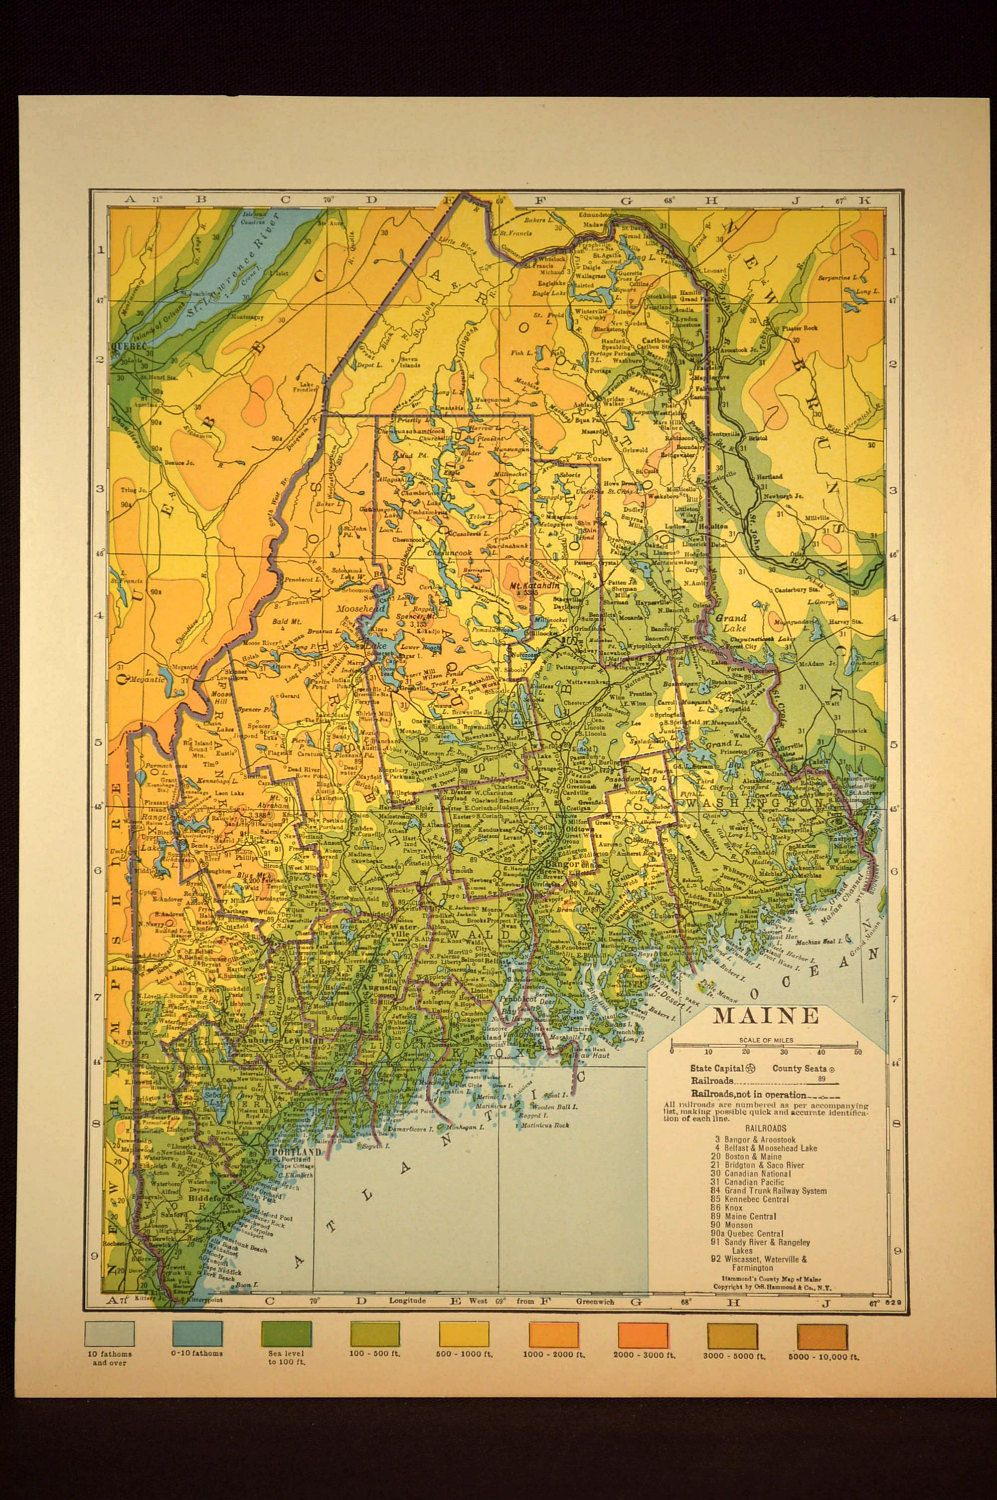 Topo Map Of Maine.Maine Map Maine Topographic Map Colorful Colored Topo Map Wall